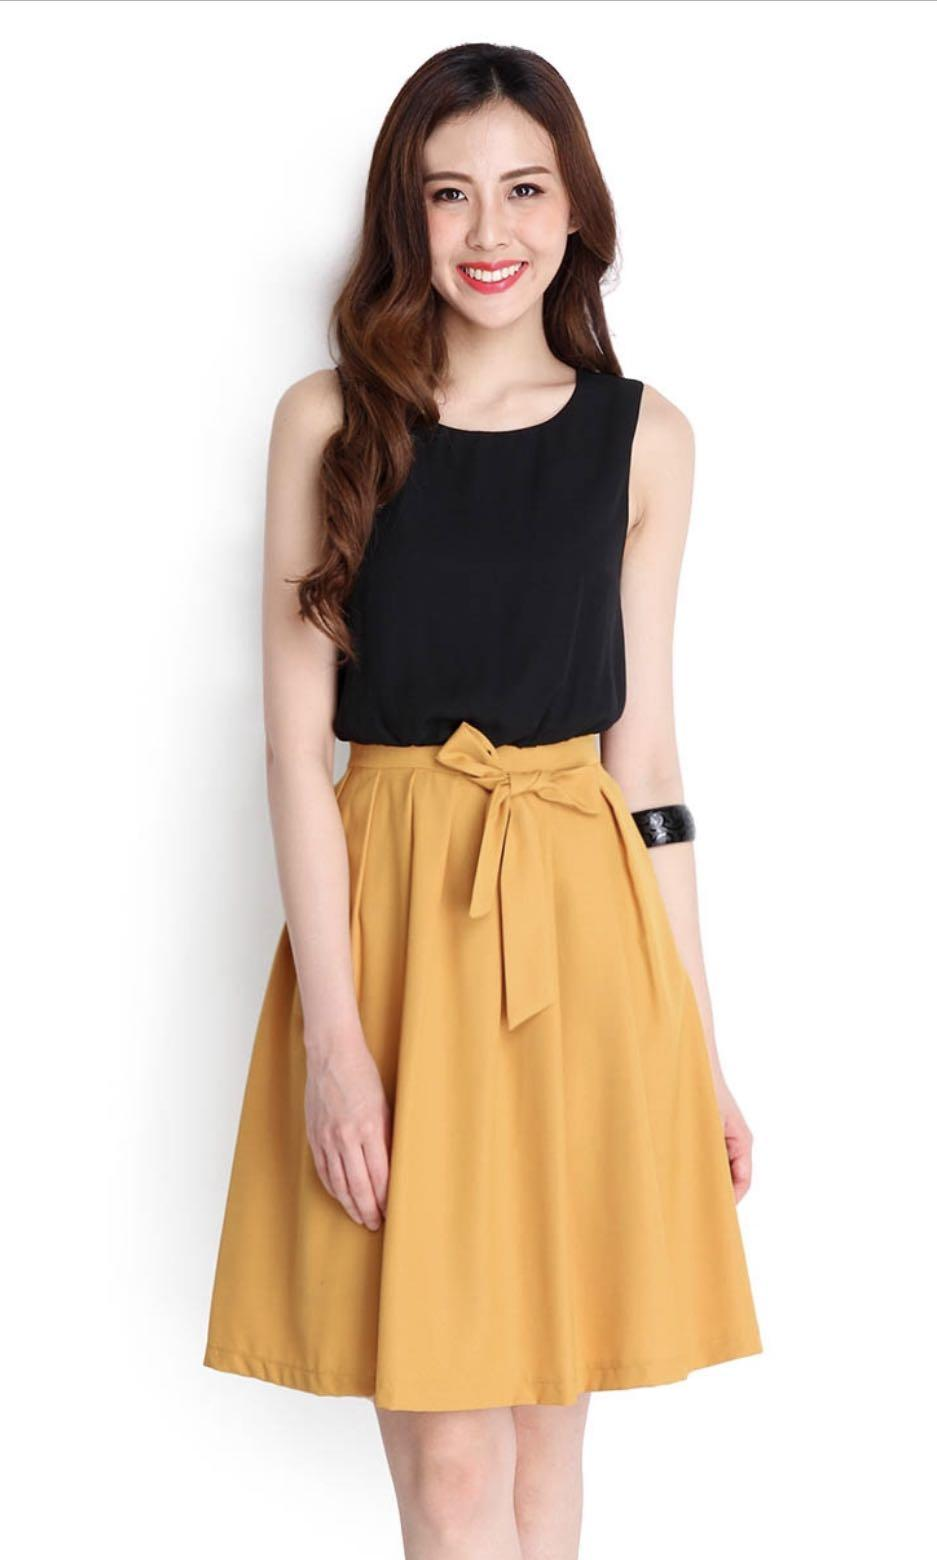 Lilypirates colour symmetry dress in mustard S